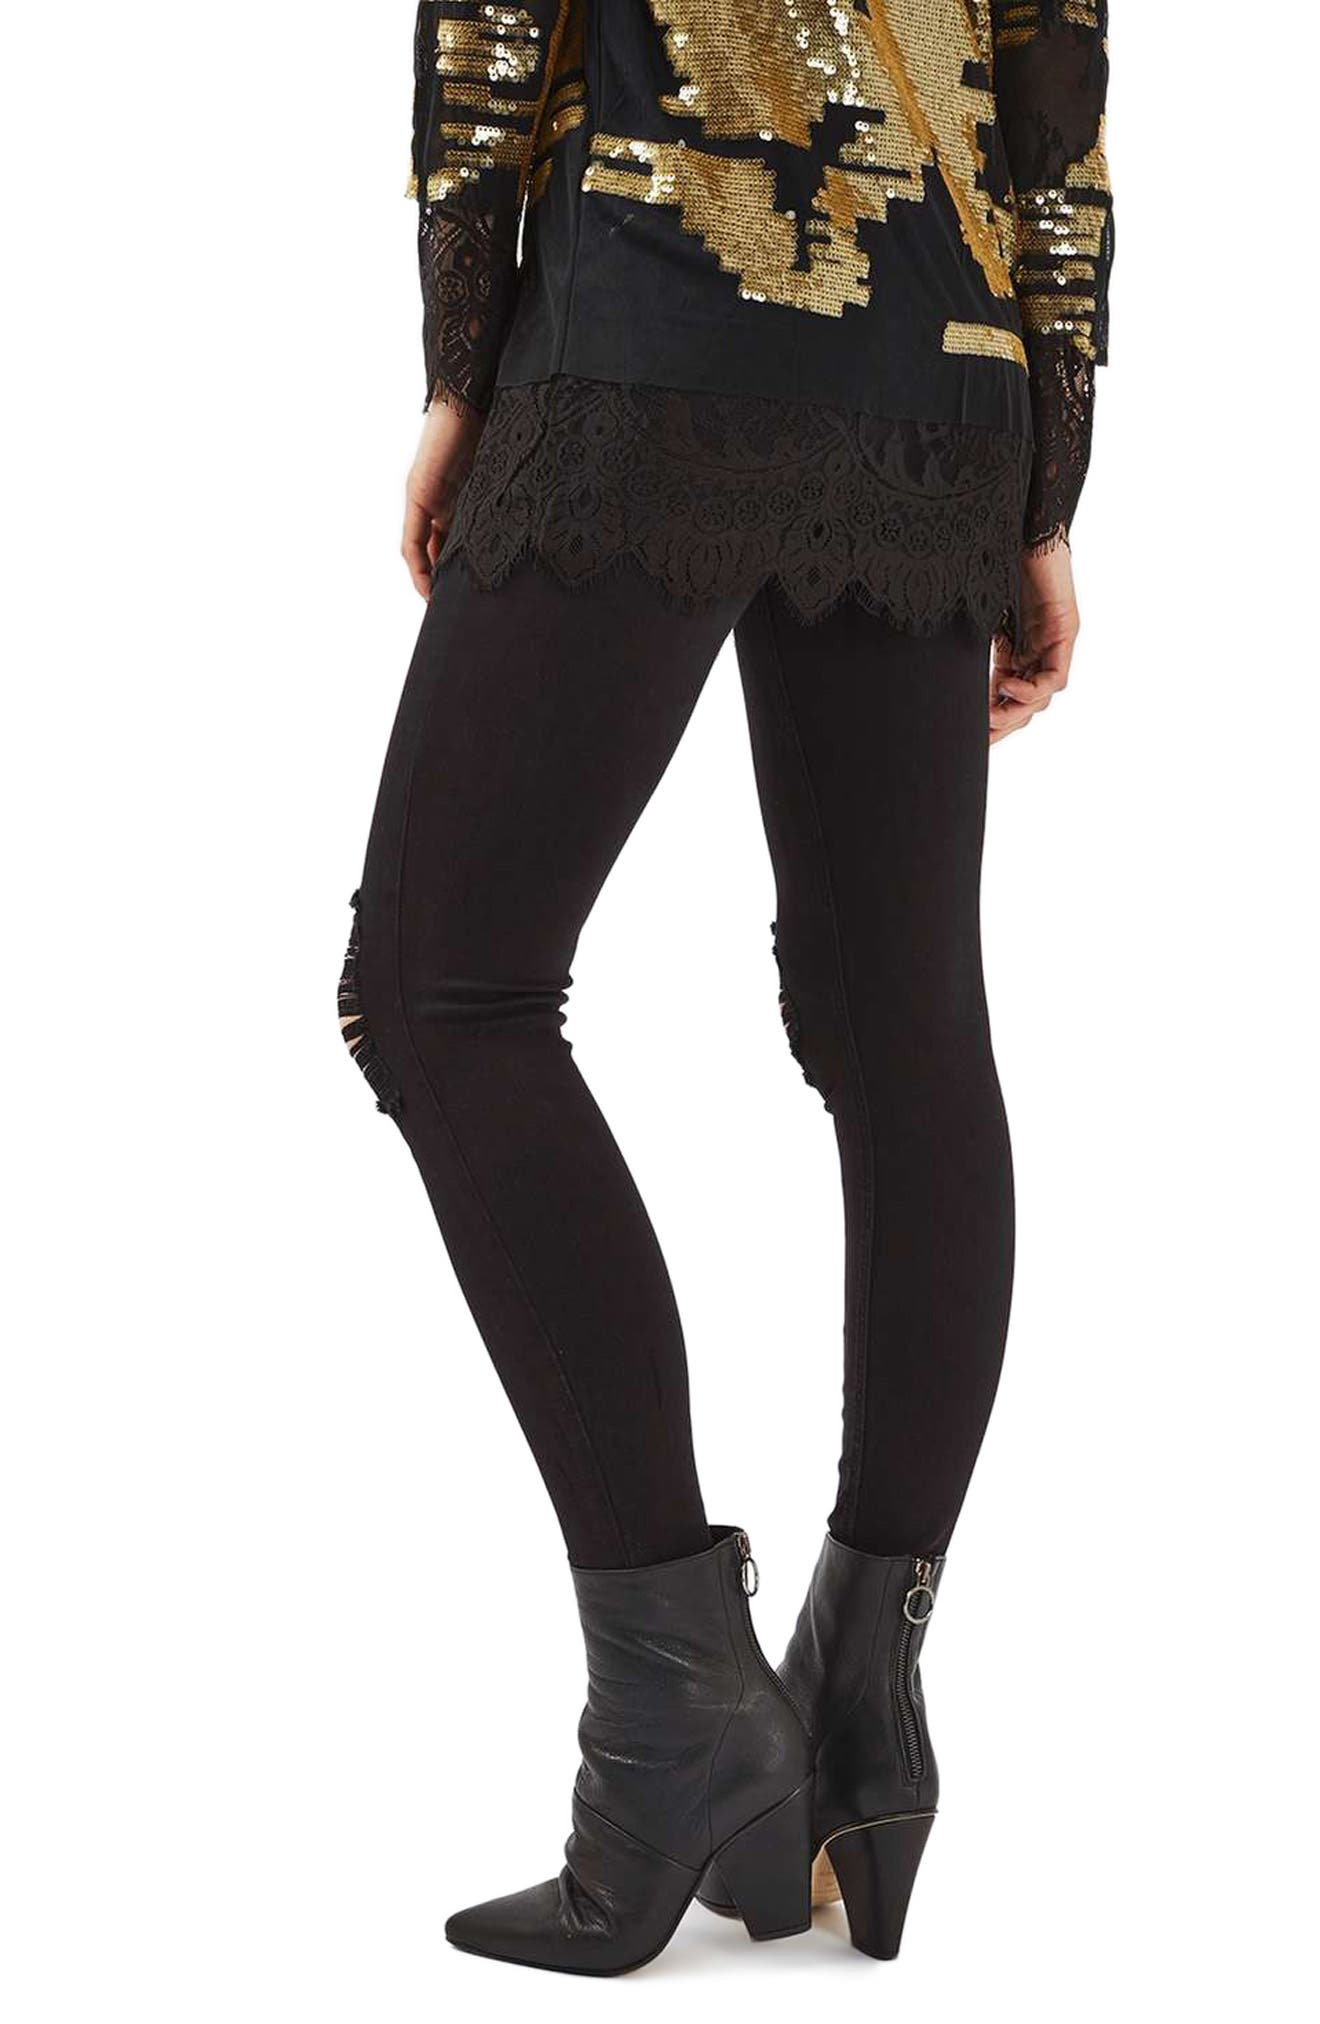 TOPSHOP,                             Ripped High Waist Ankle Skinny Jeans,                             Alternate thumbnail 3, color,                             001